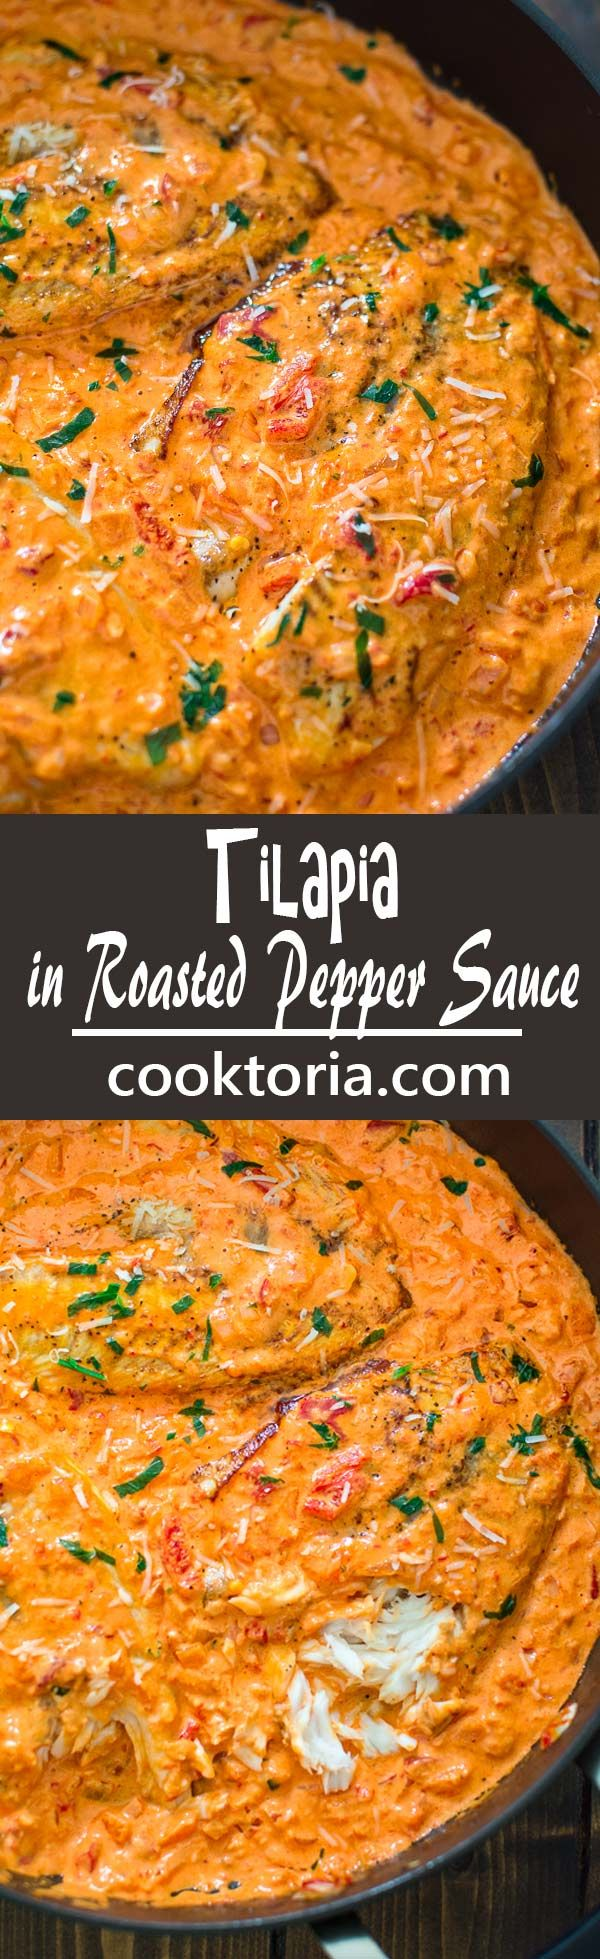 This Tilapia in Roasted Pepper Sauce is absolutely scrumptious, elegant and worthy of a special occasion. You won't believe how easy it is to make it! ❤️ COOKTORIA.COM